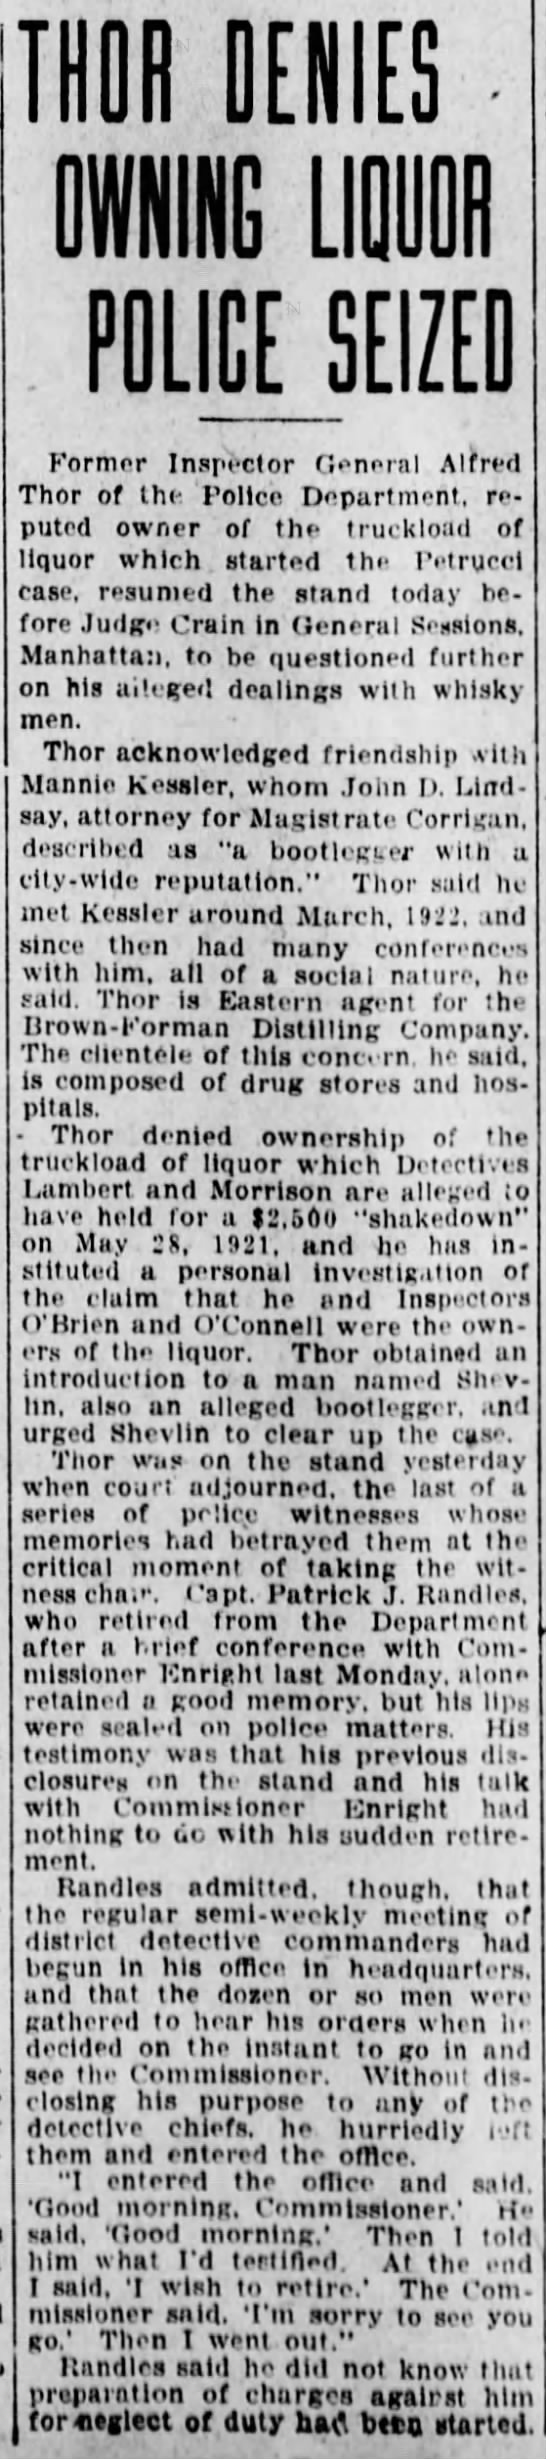 Thor defends himself 19 Sep 1923 Brooklyn Daily Eagle